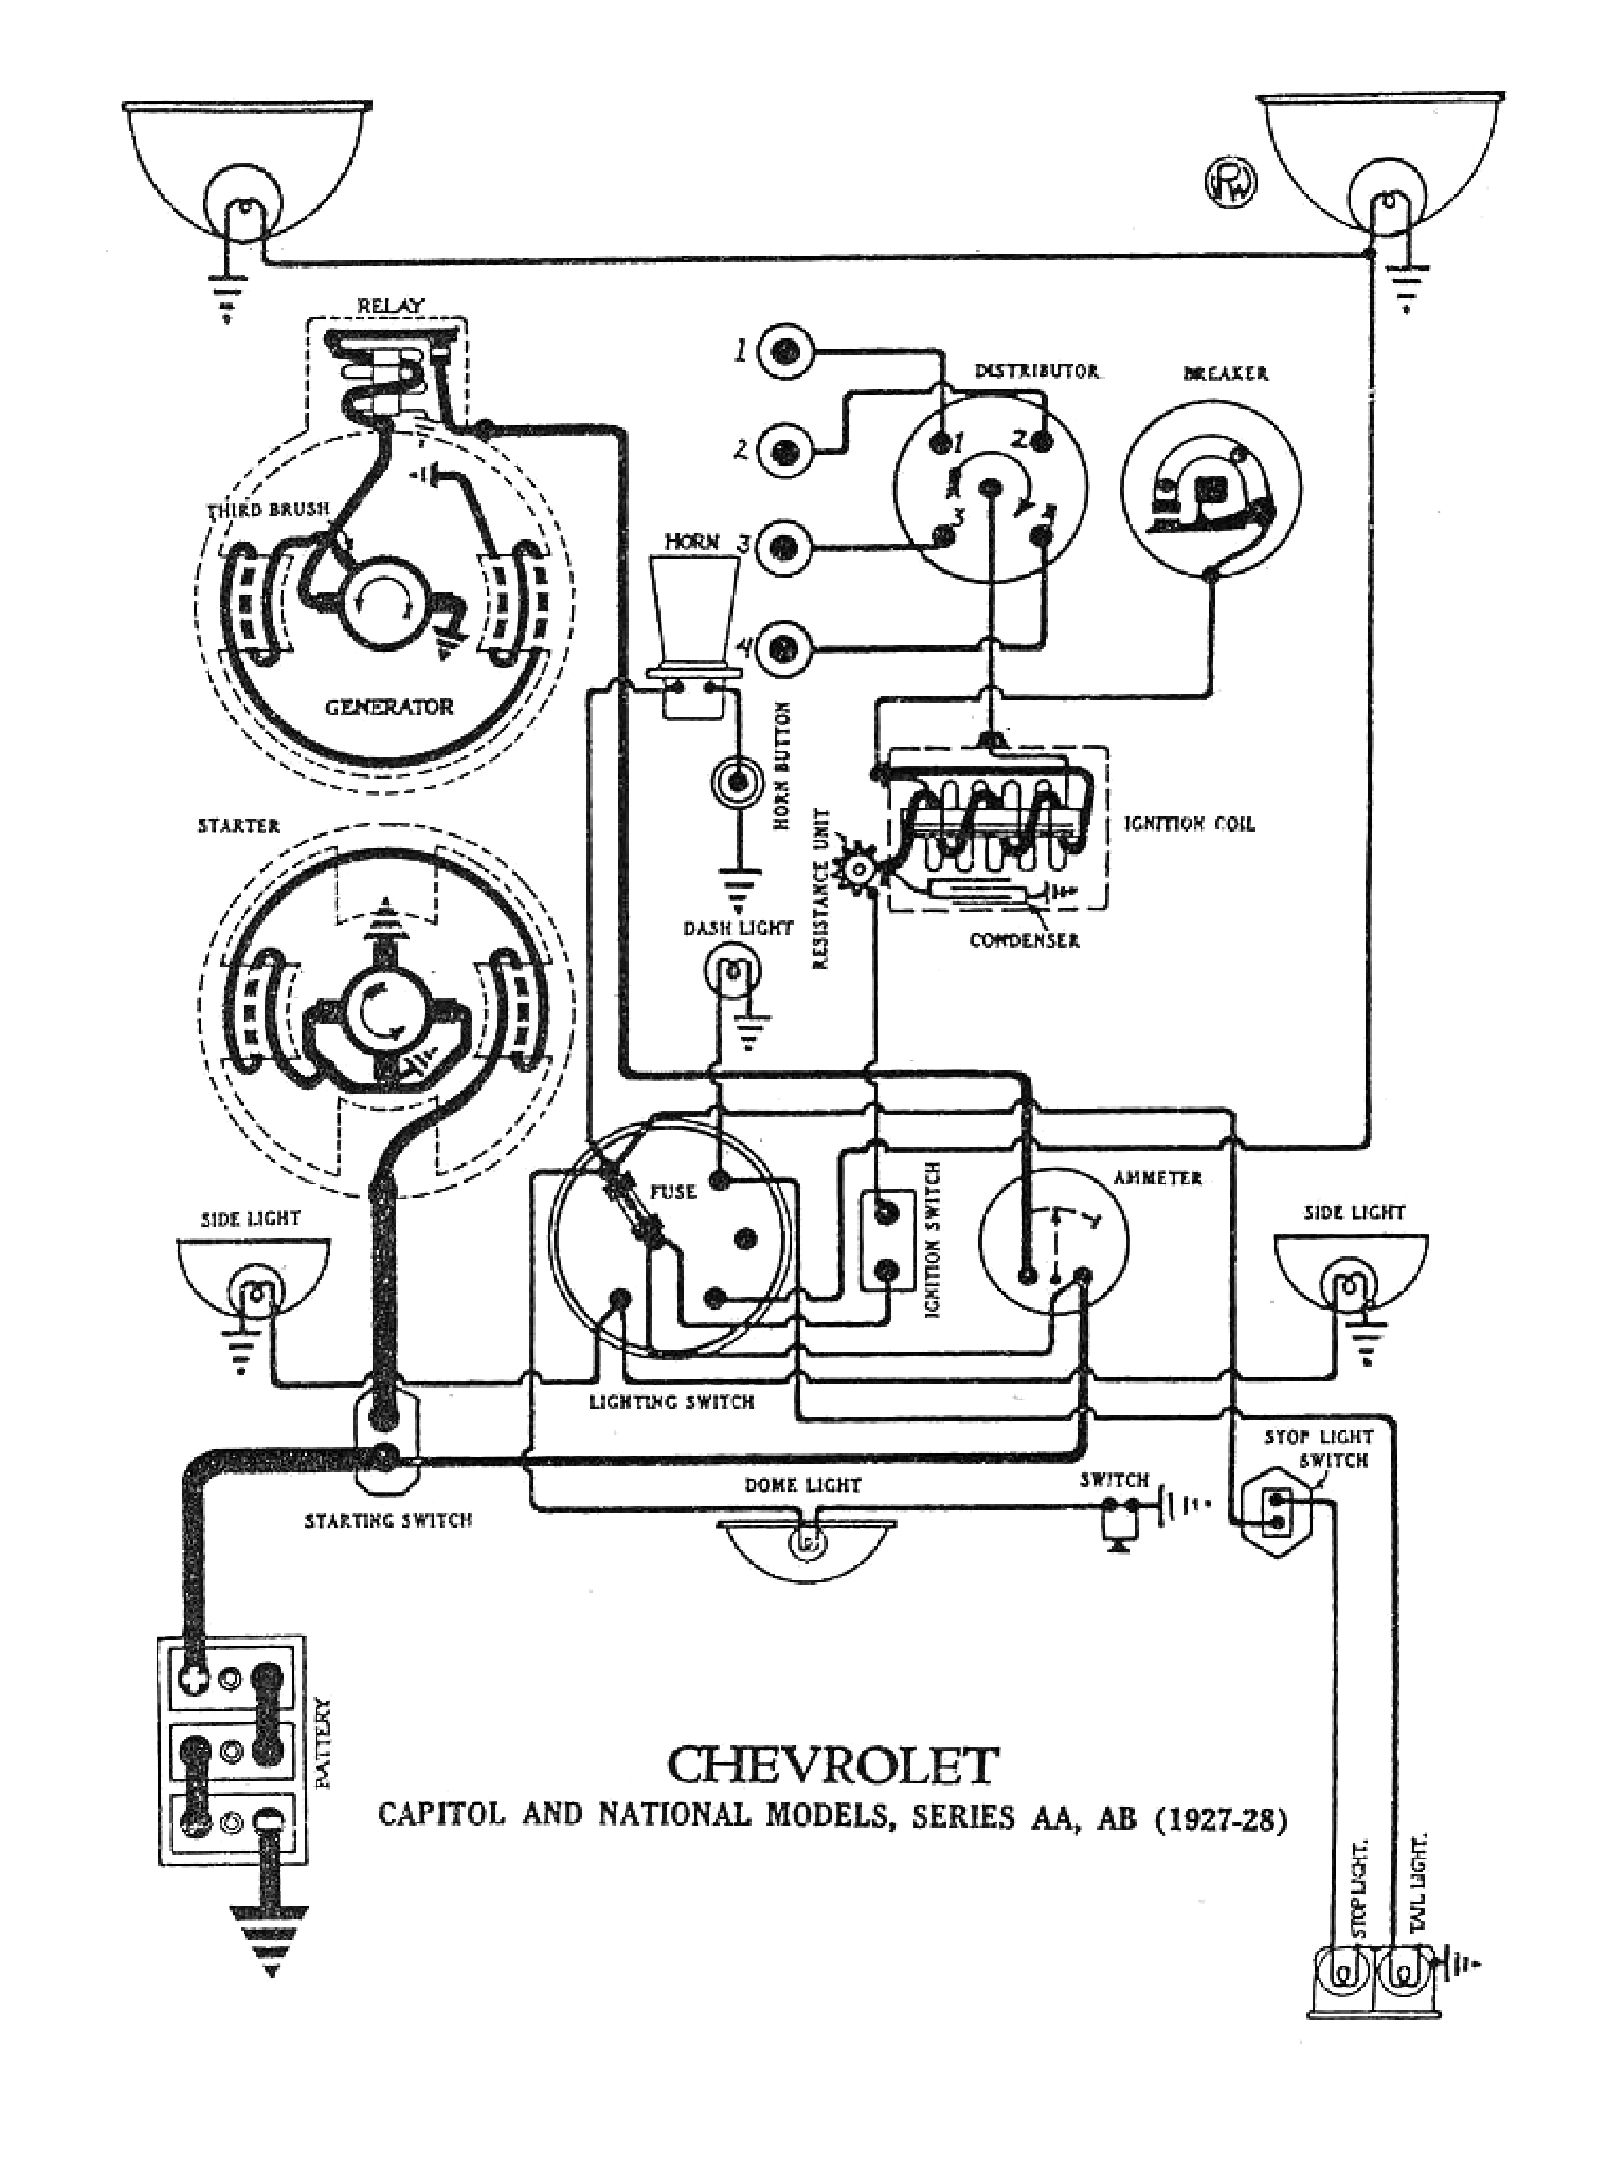 chevy wiring diagrams rh chevy oldcarmanualproject com 2000 Oldsmobile Silhouette Engine Diagram 2000 Oldsmobile Intrigue Engine Diagram